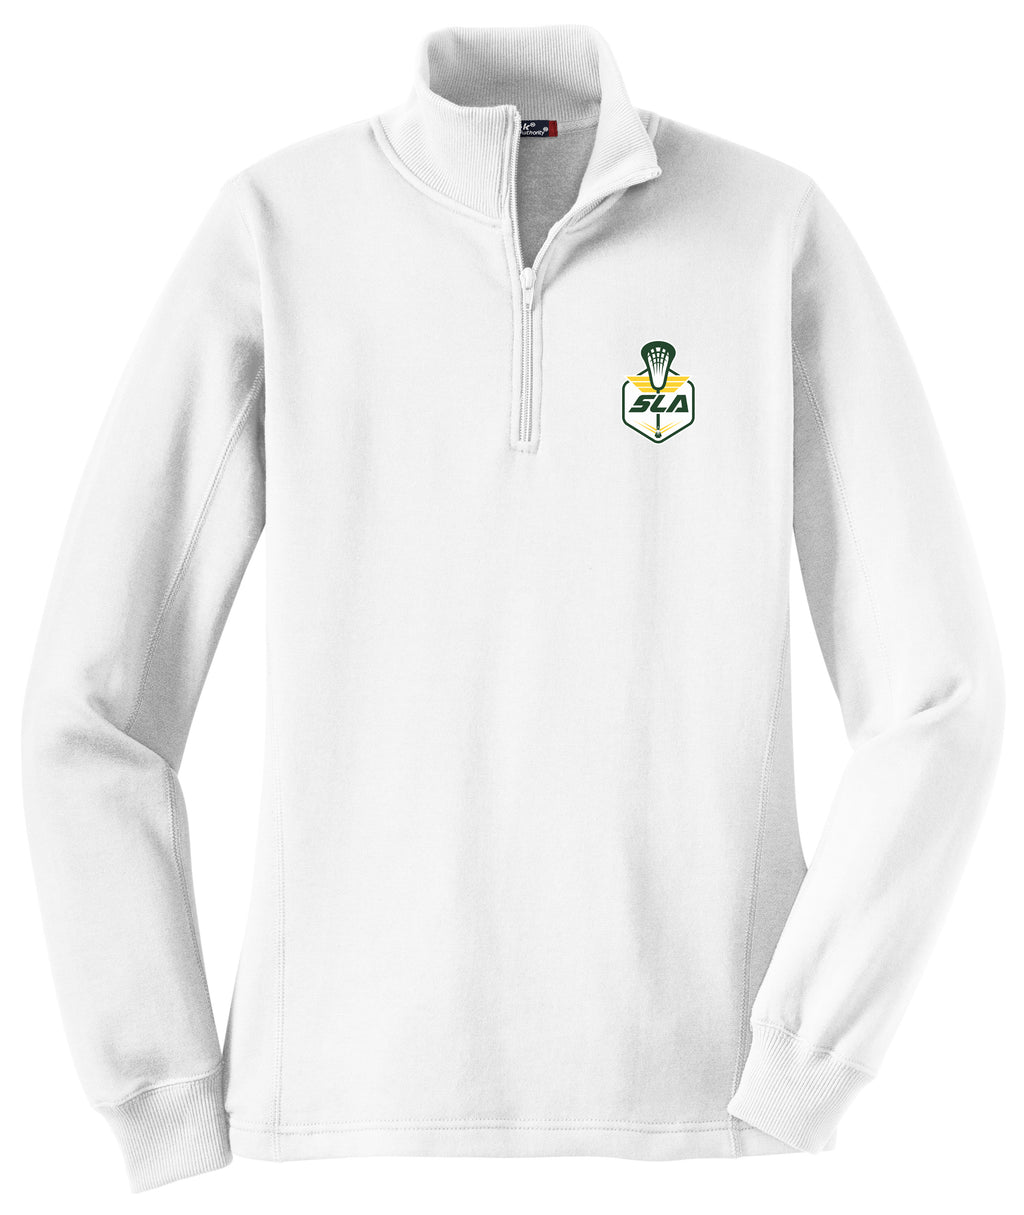 Sycamore Lacrosse Association Women's White 1/4 Zip Fleece